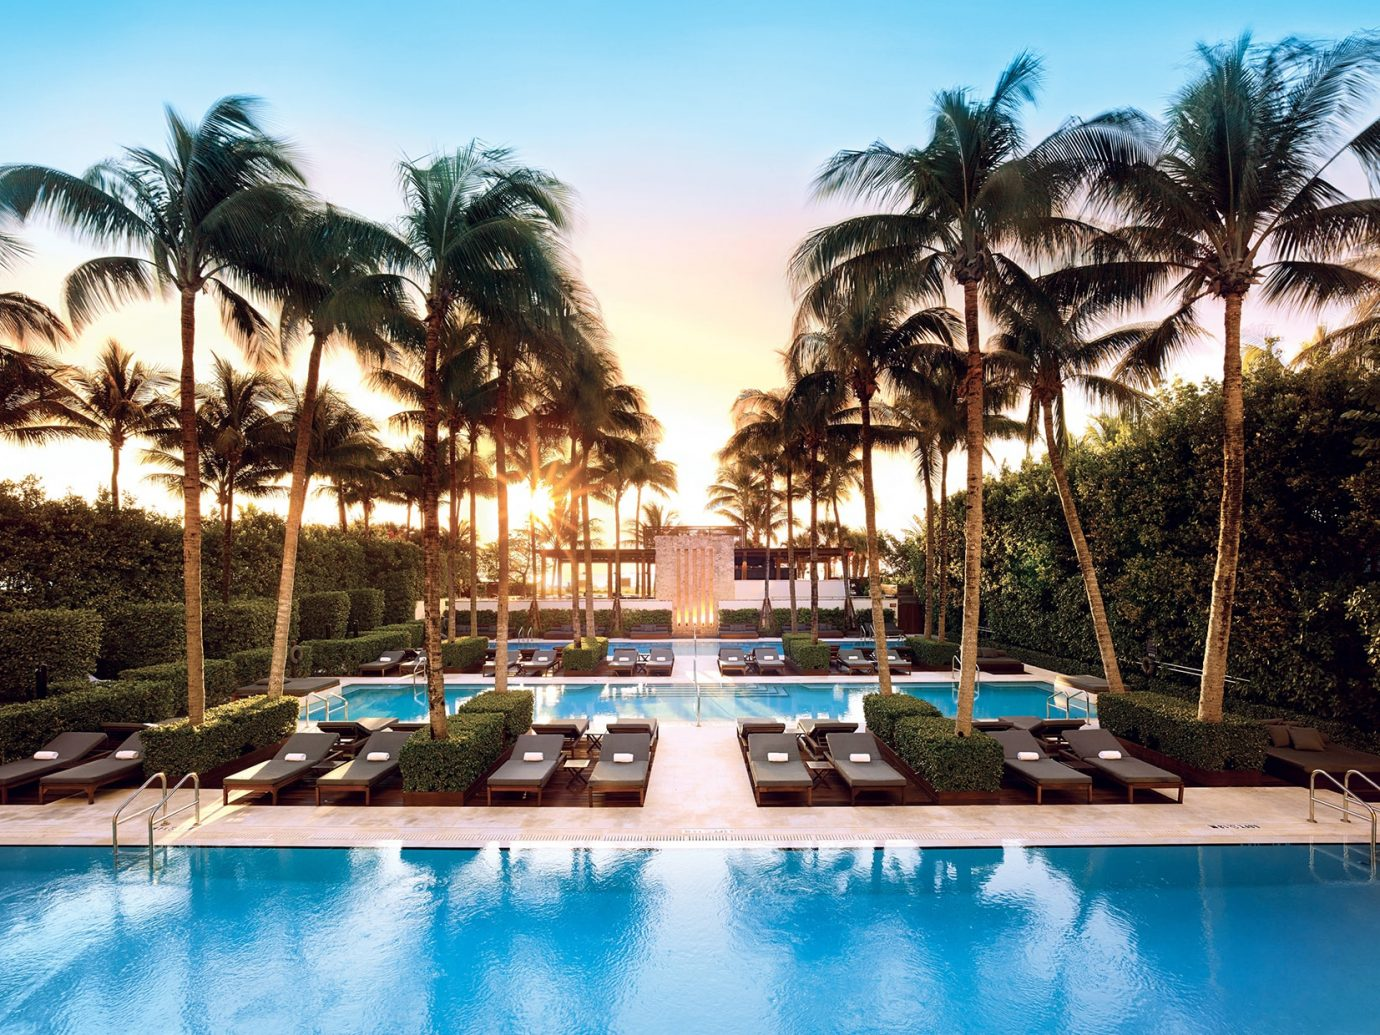 Pool at the Setai Miami Beach